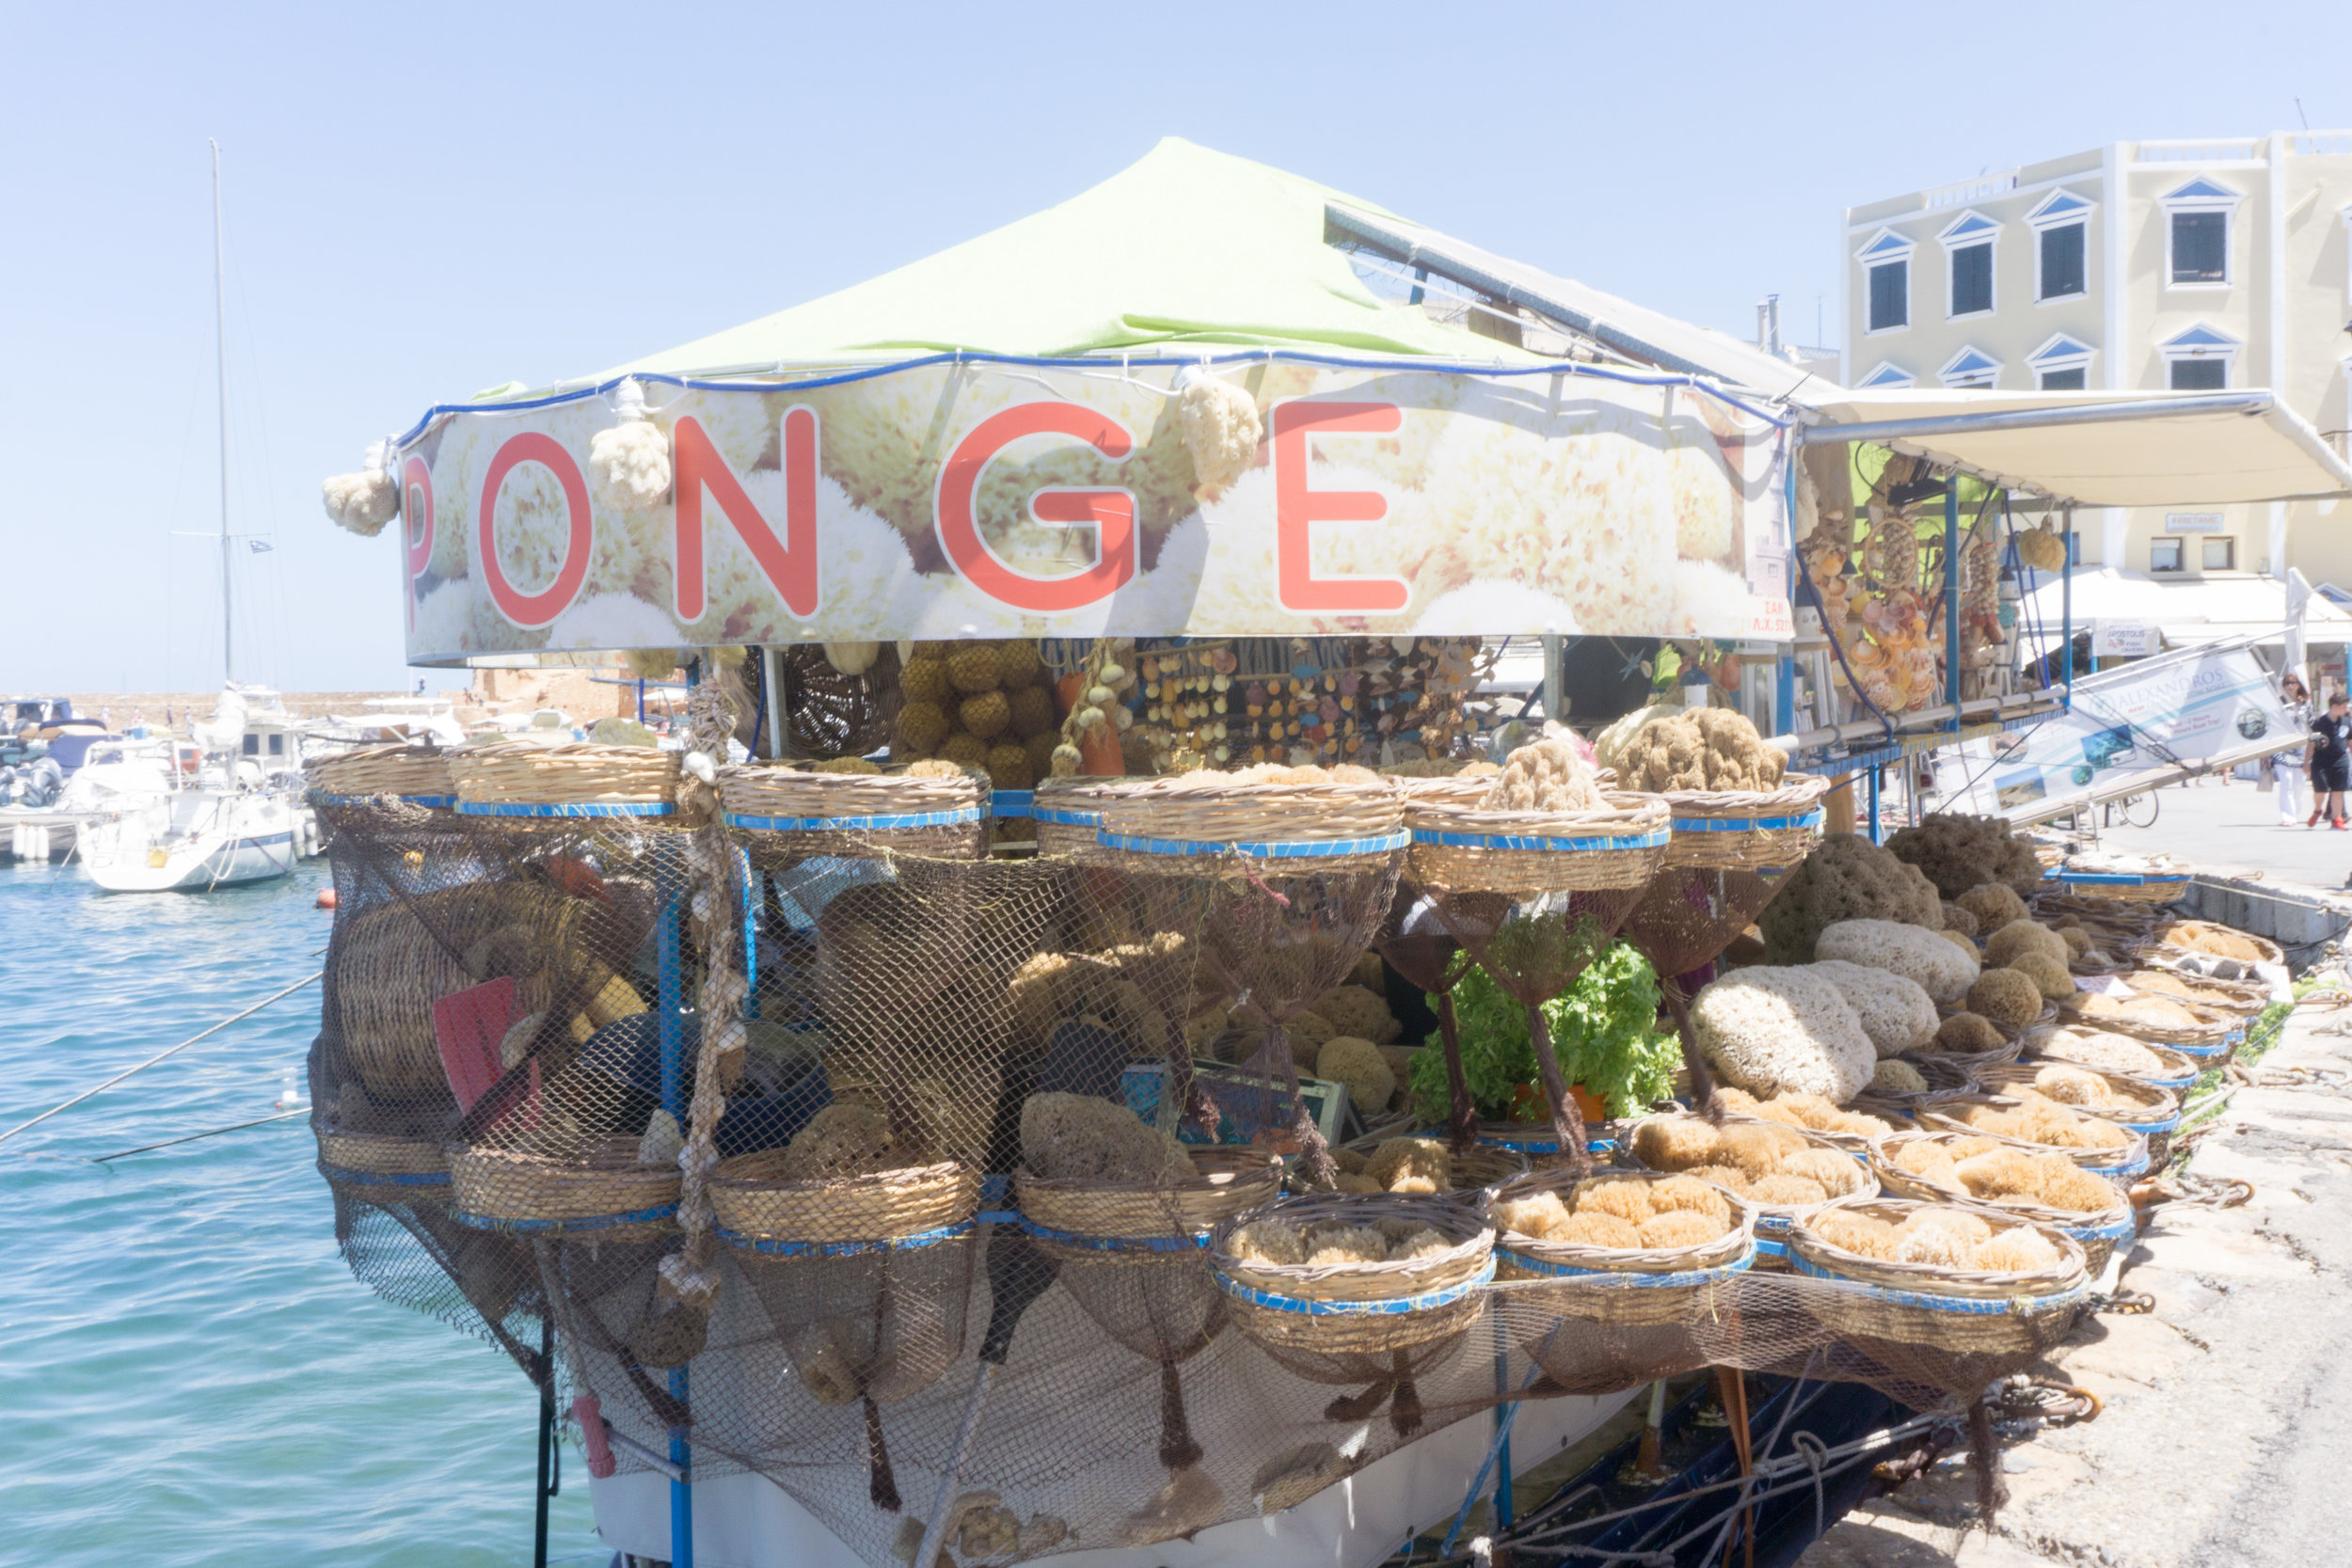 Little shops on boats throughout the harbor.